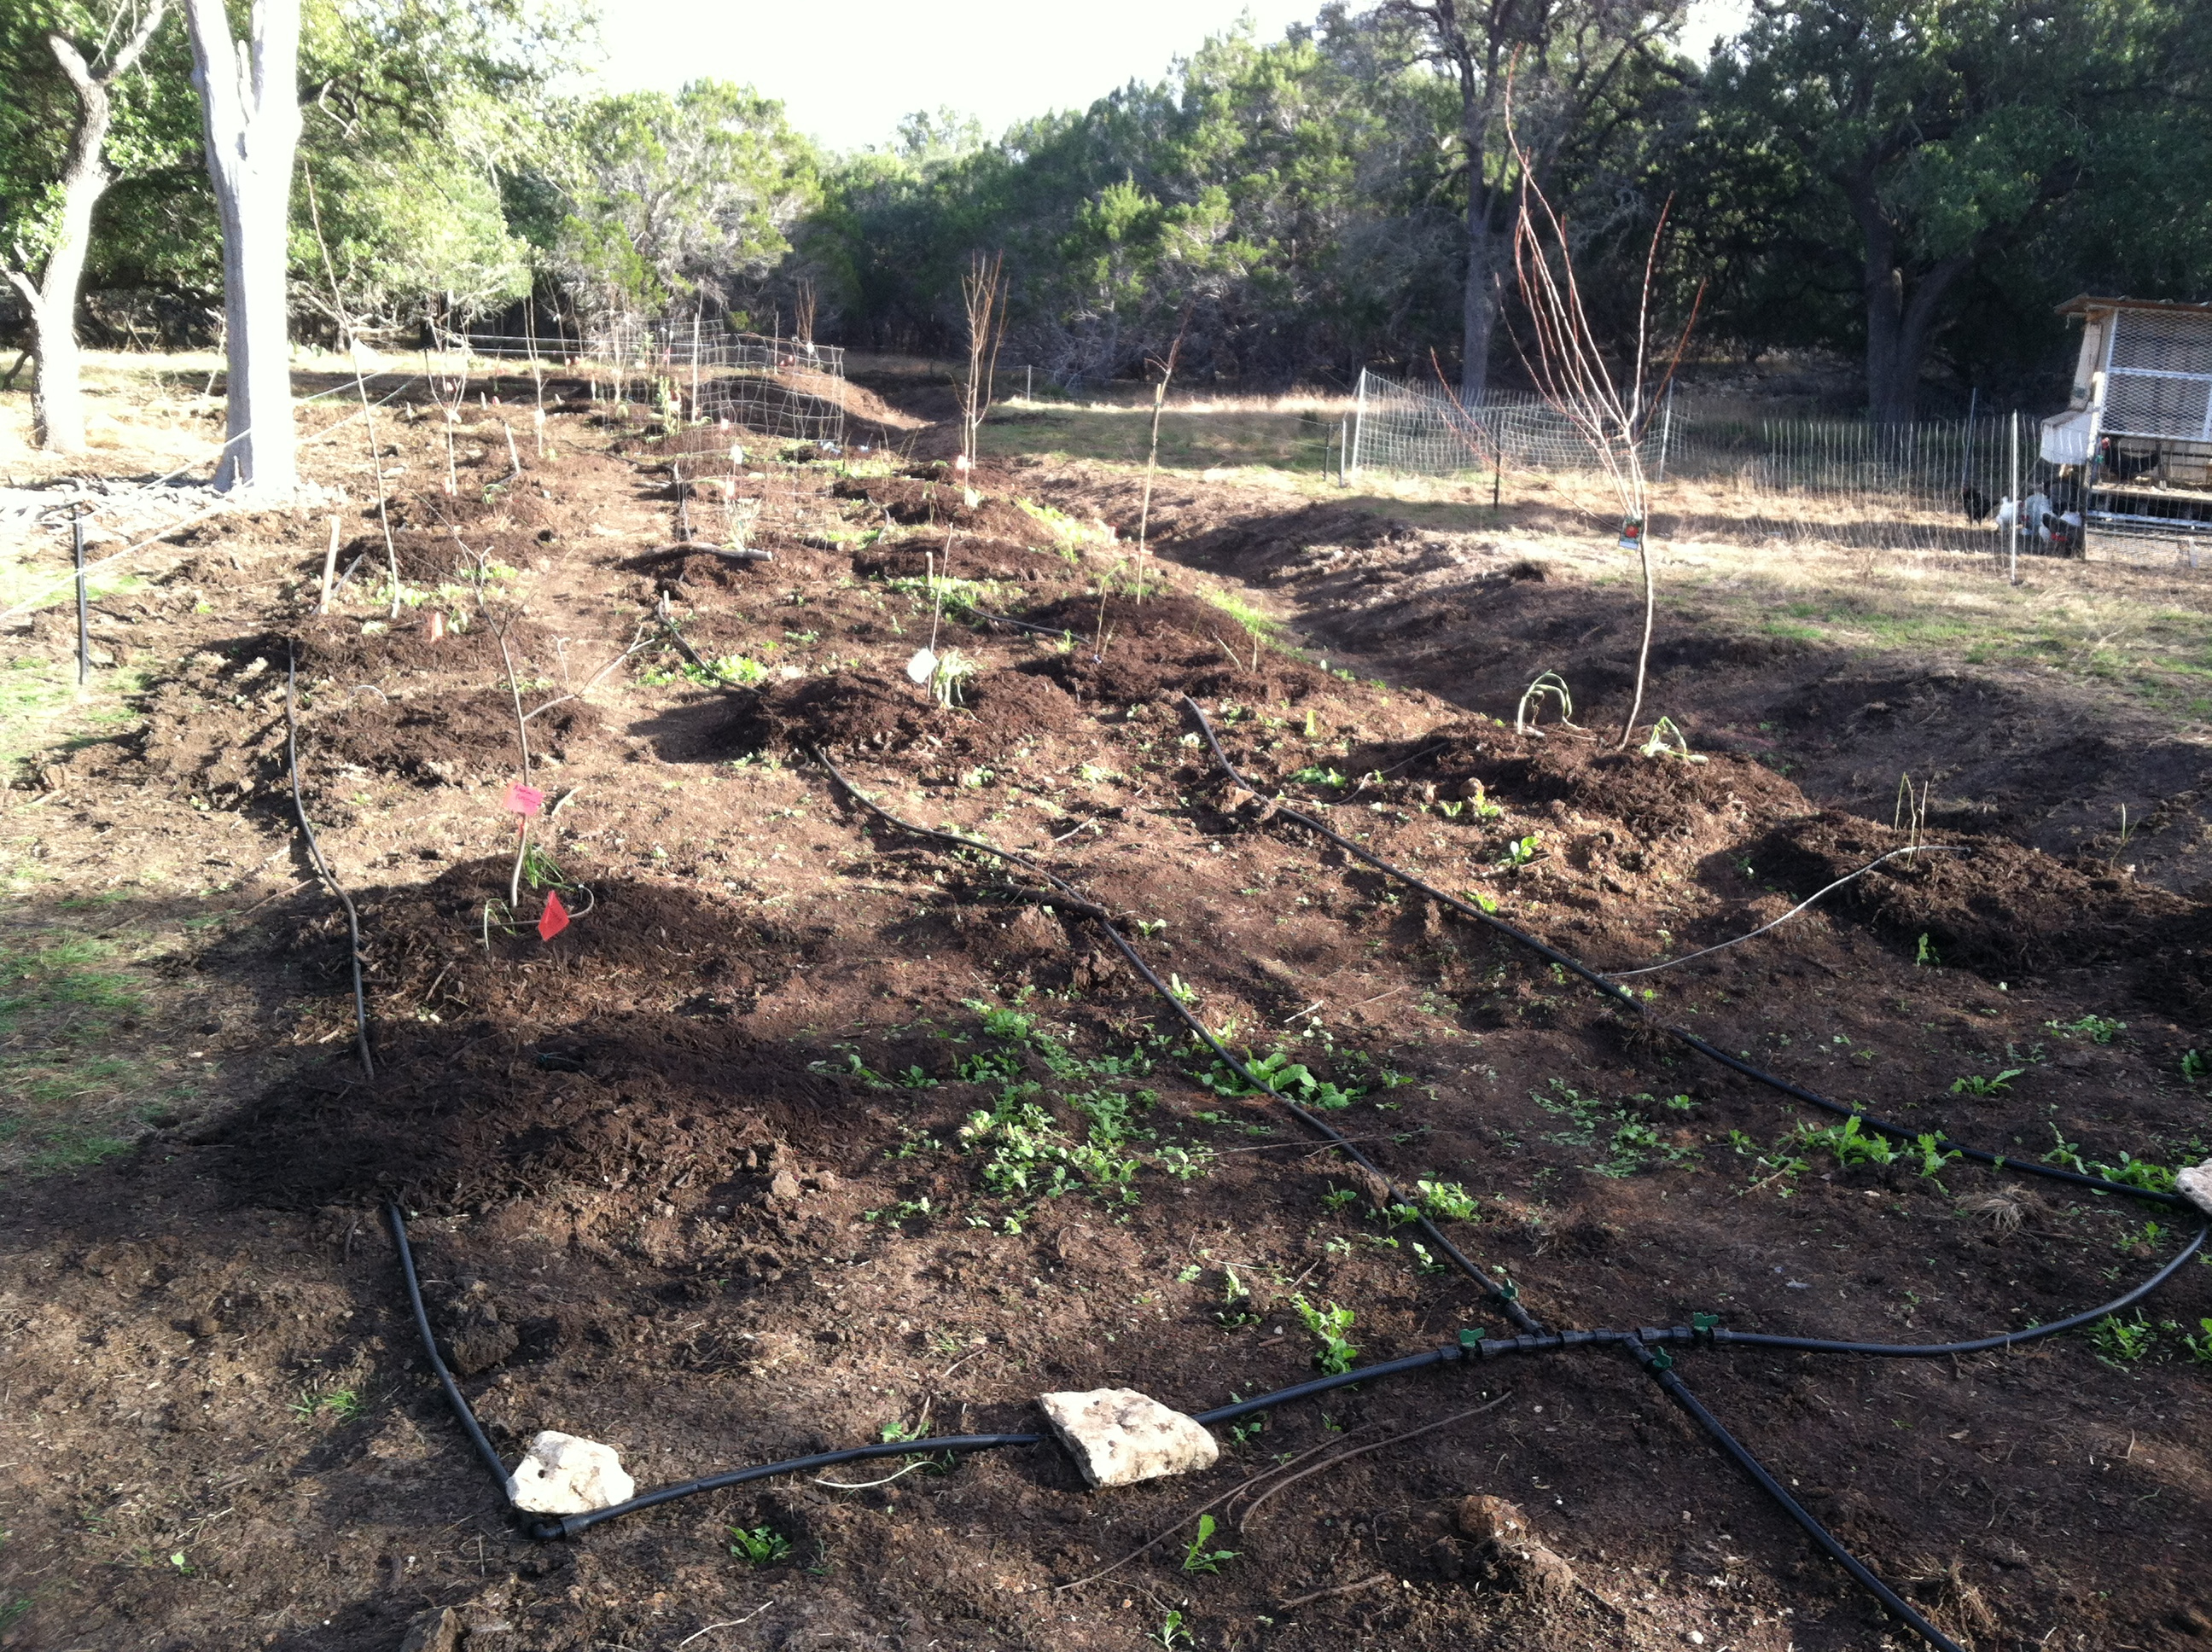 A new Food Forest Planting 20 miles north of San Antonio. We designed and installed a system including 29 Fruit trees, 30 thornless blackberries, 30 aspargus, a multifunctional cover crop seeding, soil amendments and timed drip irrigation. All installed on a large berm that will passively in soak rain water runoff, prevent erosion and help to rehydrate the land scape. Check back in the spring & summer to see an updated photo of how this system grows in.